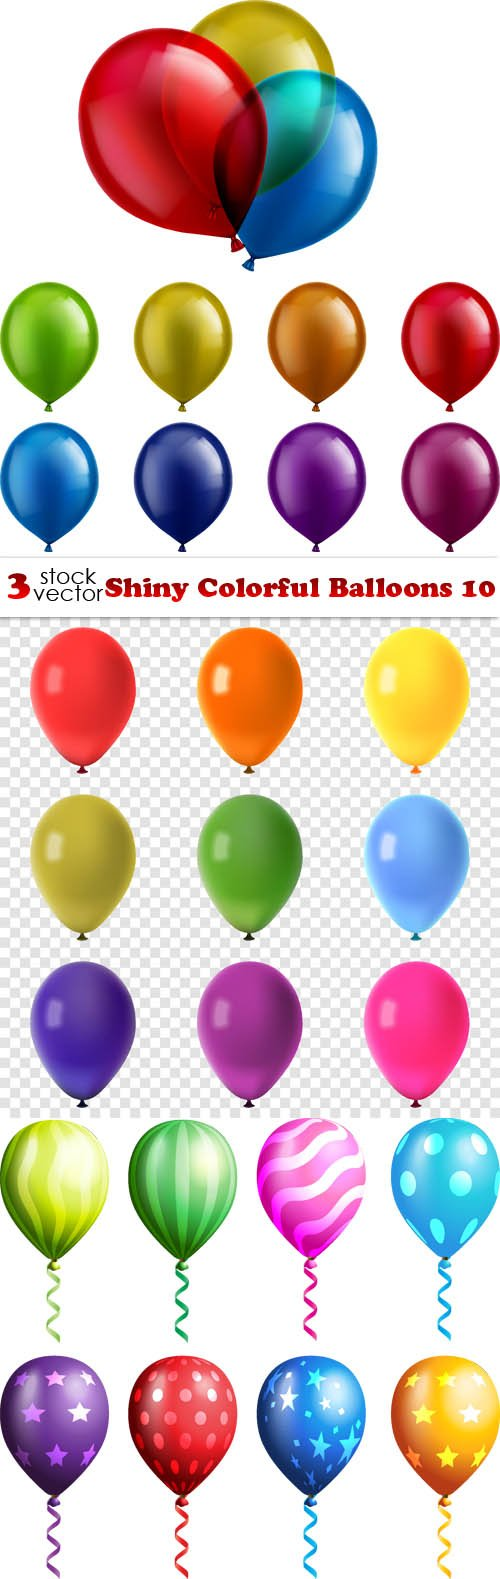 Vectors - Shiny Colorful Balloons 10